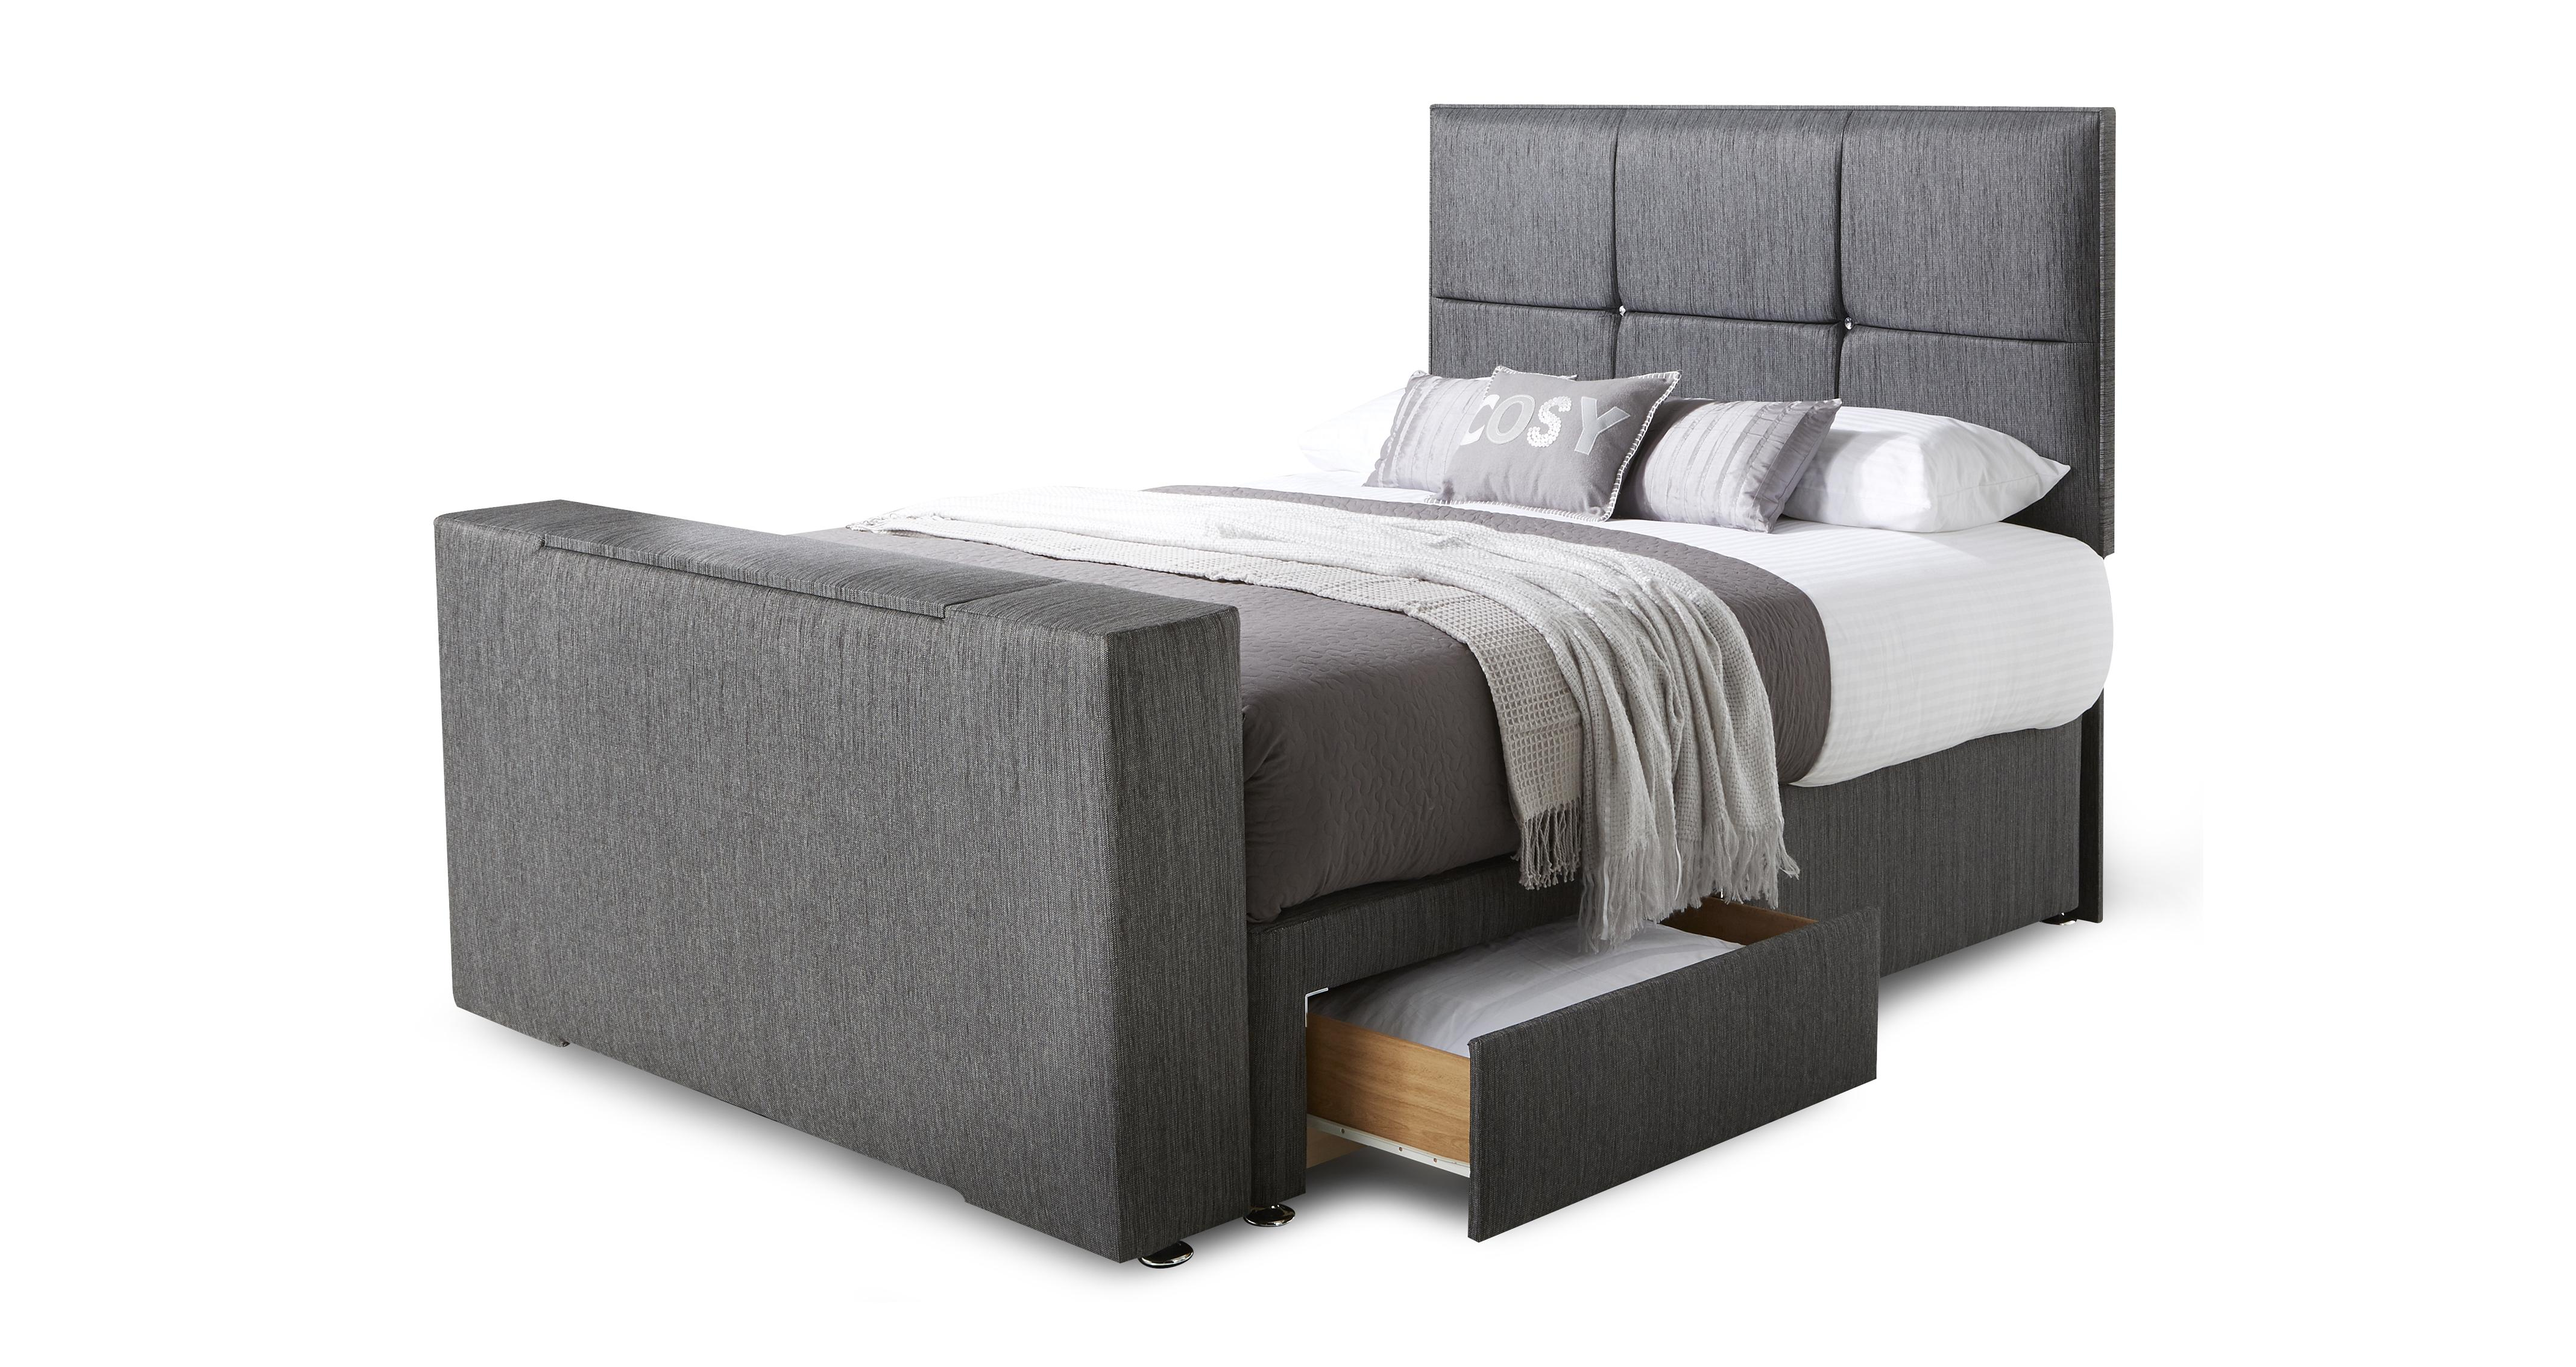 Tv In Bed : Inspire double 2 drawer tv bed dfs